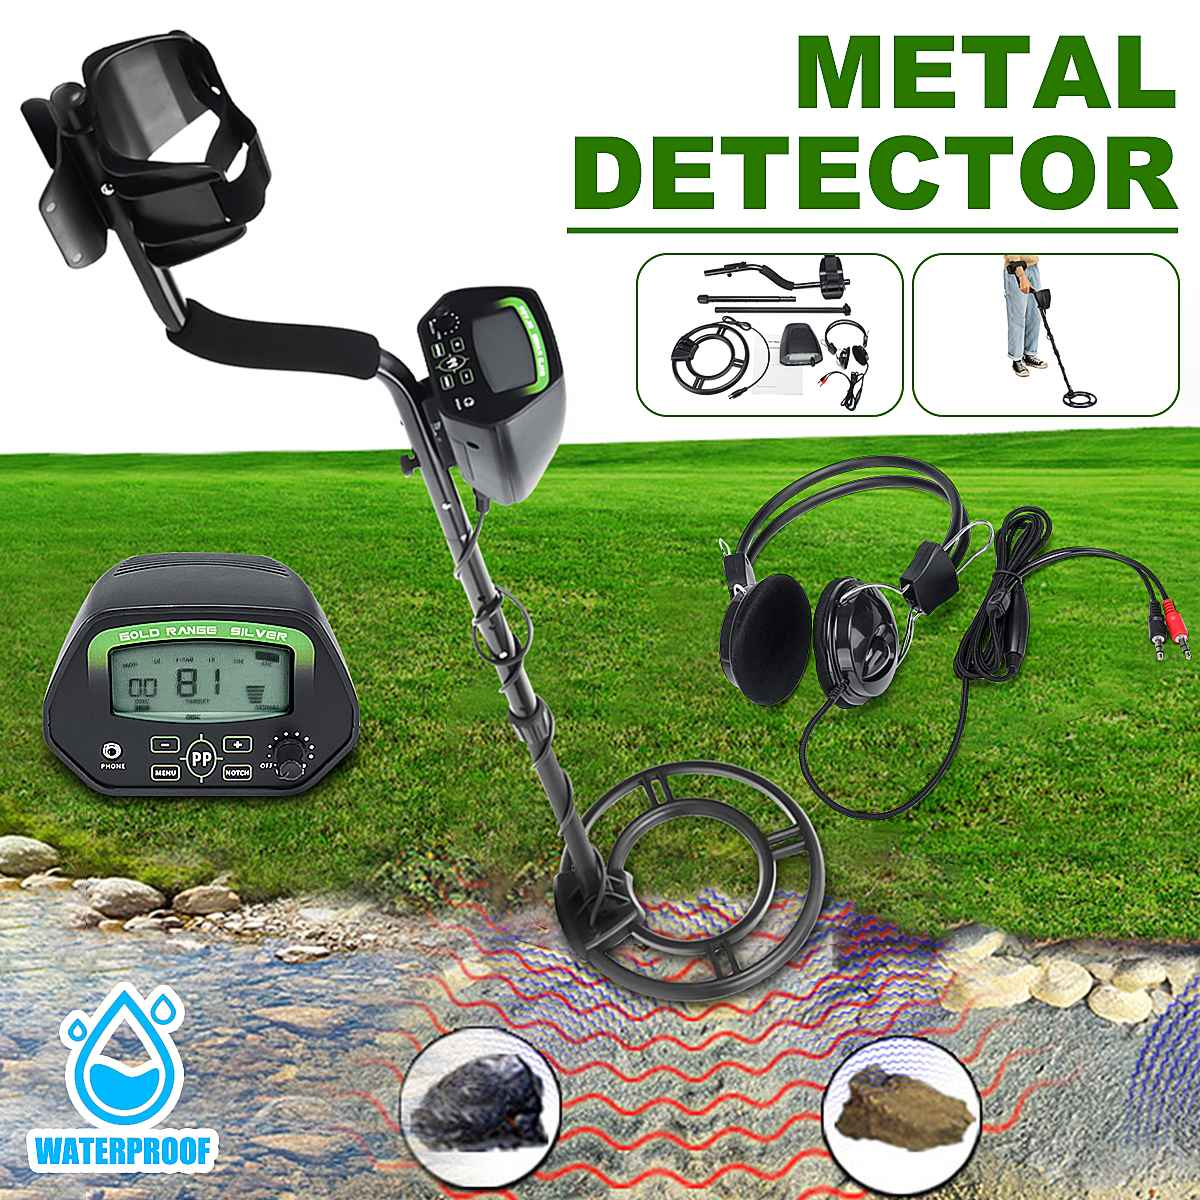 LCD Screen Metal Detector Searching Deep Sensitive Gold Digger Treasure Hunting Waterproof Undergrounds Metal Detectors GC1037LCD Screen Metal Detector Searching Deep Sensitive Gold Digger Treasure Hunting Waterproof Undergrounds Metal Detectors GC1037